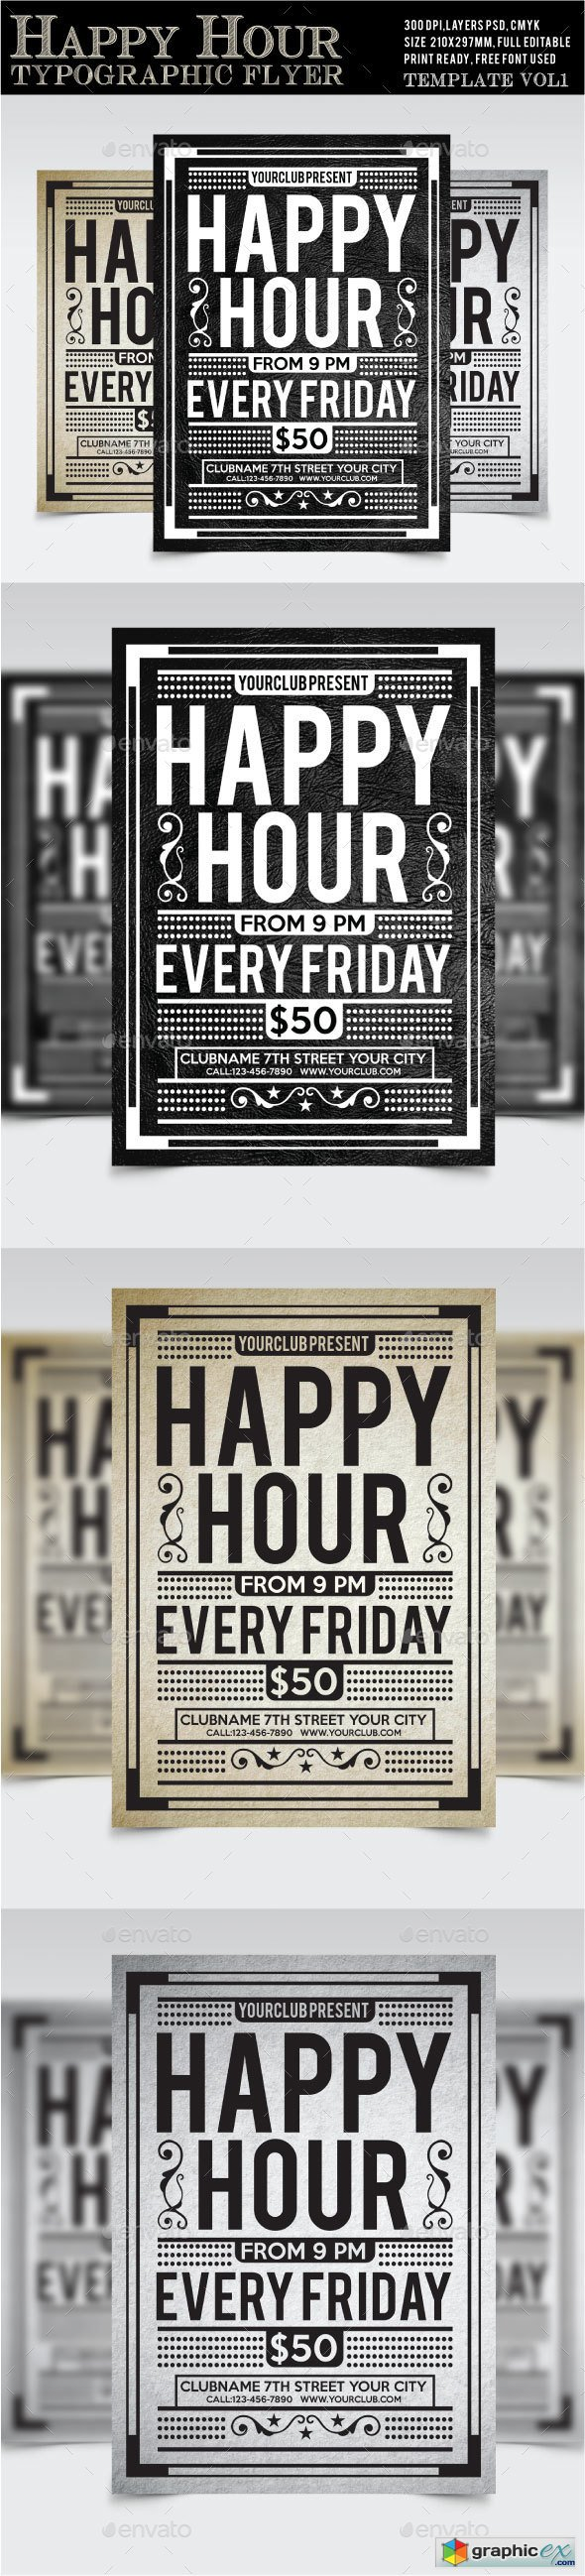 Happy Hour Flyer Vol1 Free Download Vector Stock Image Photoshop Icon